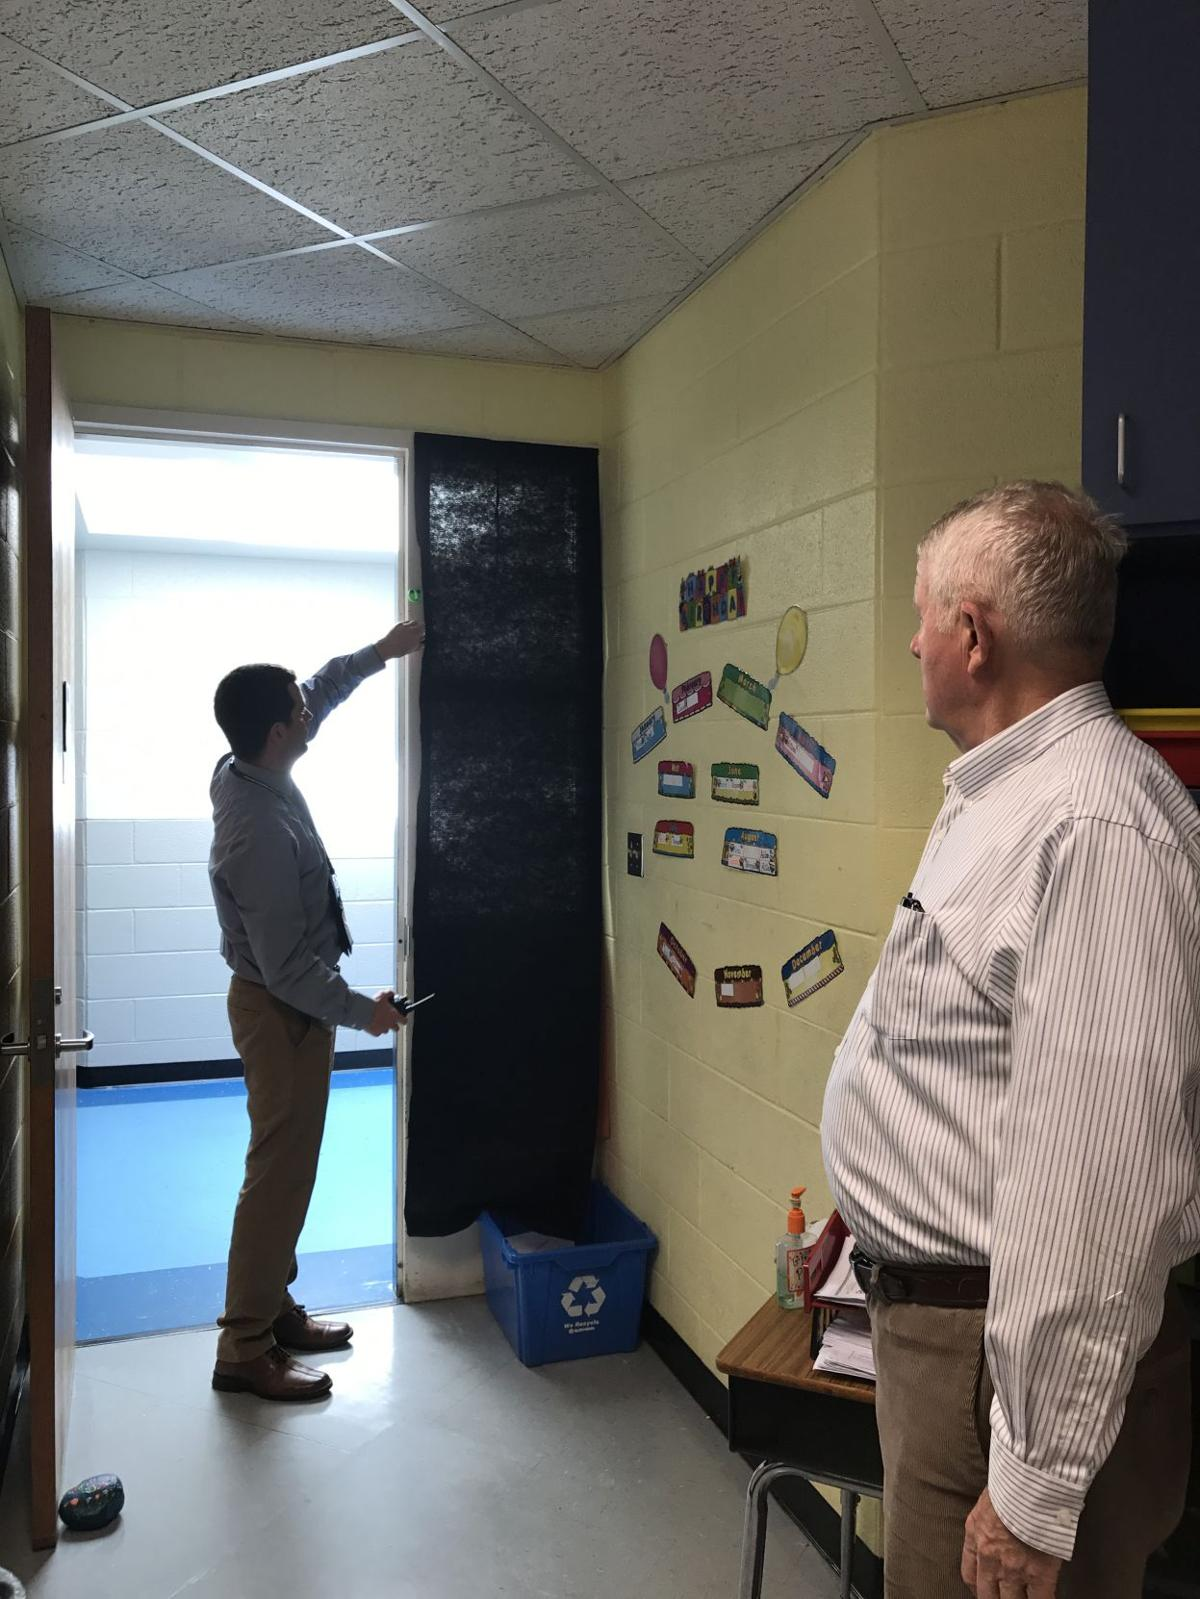 Donations of greenbacks allows schools to black out windows